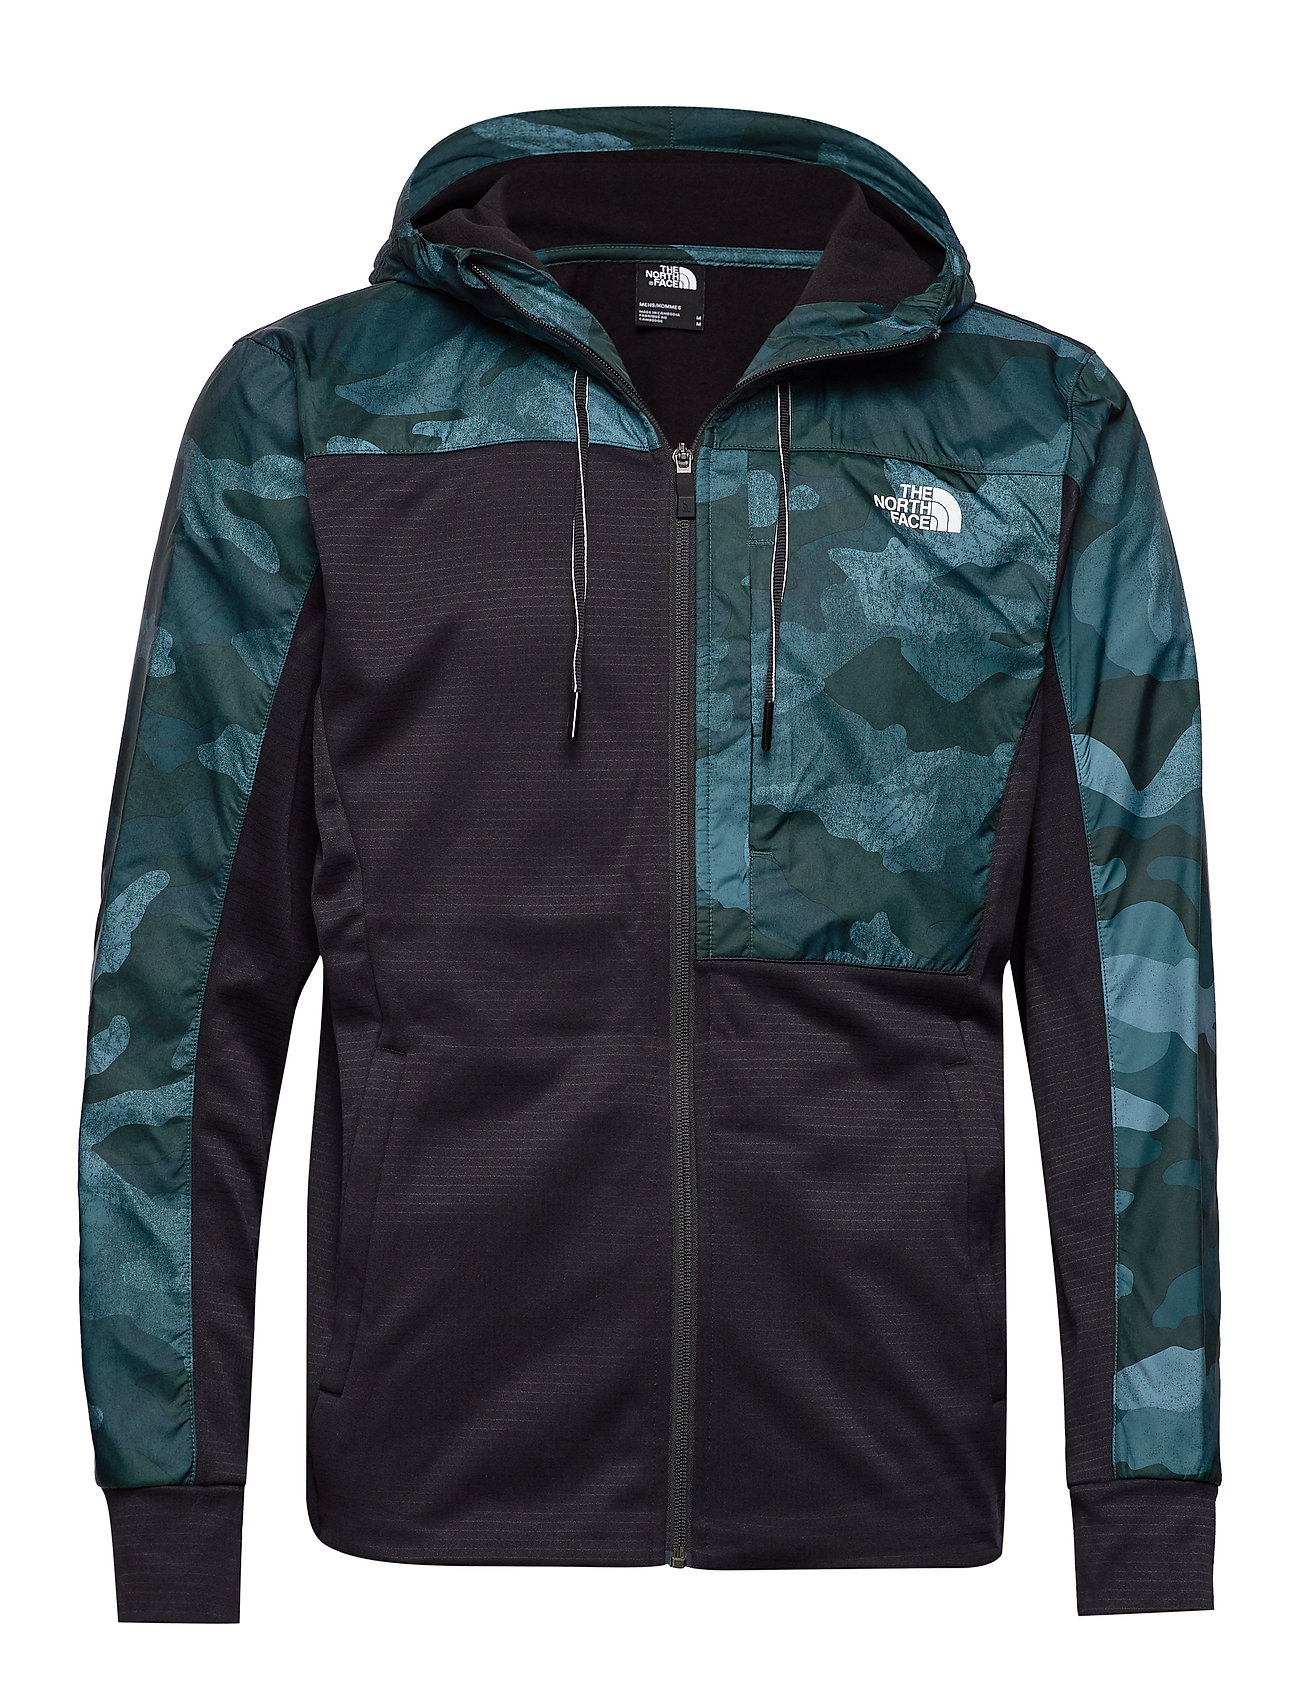 The North Face M TNL OVERLAY JKT - BLACK/GREEN PRT